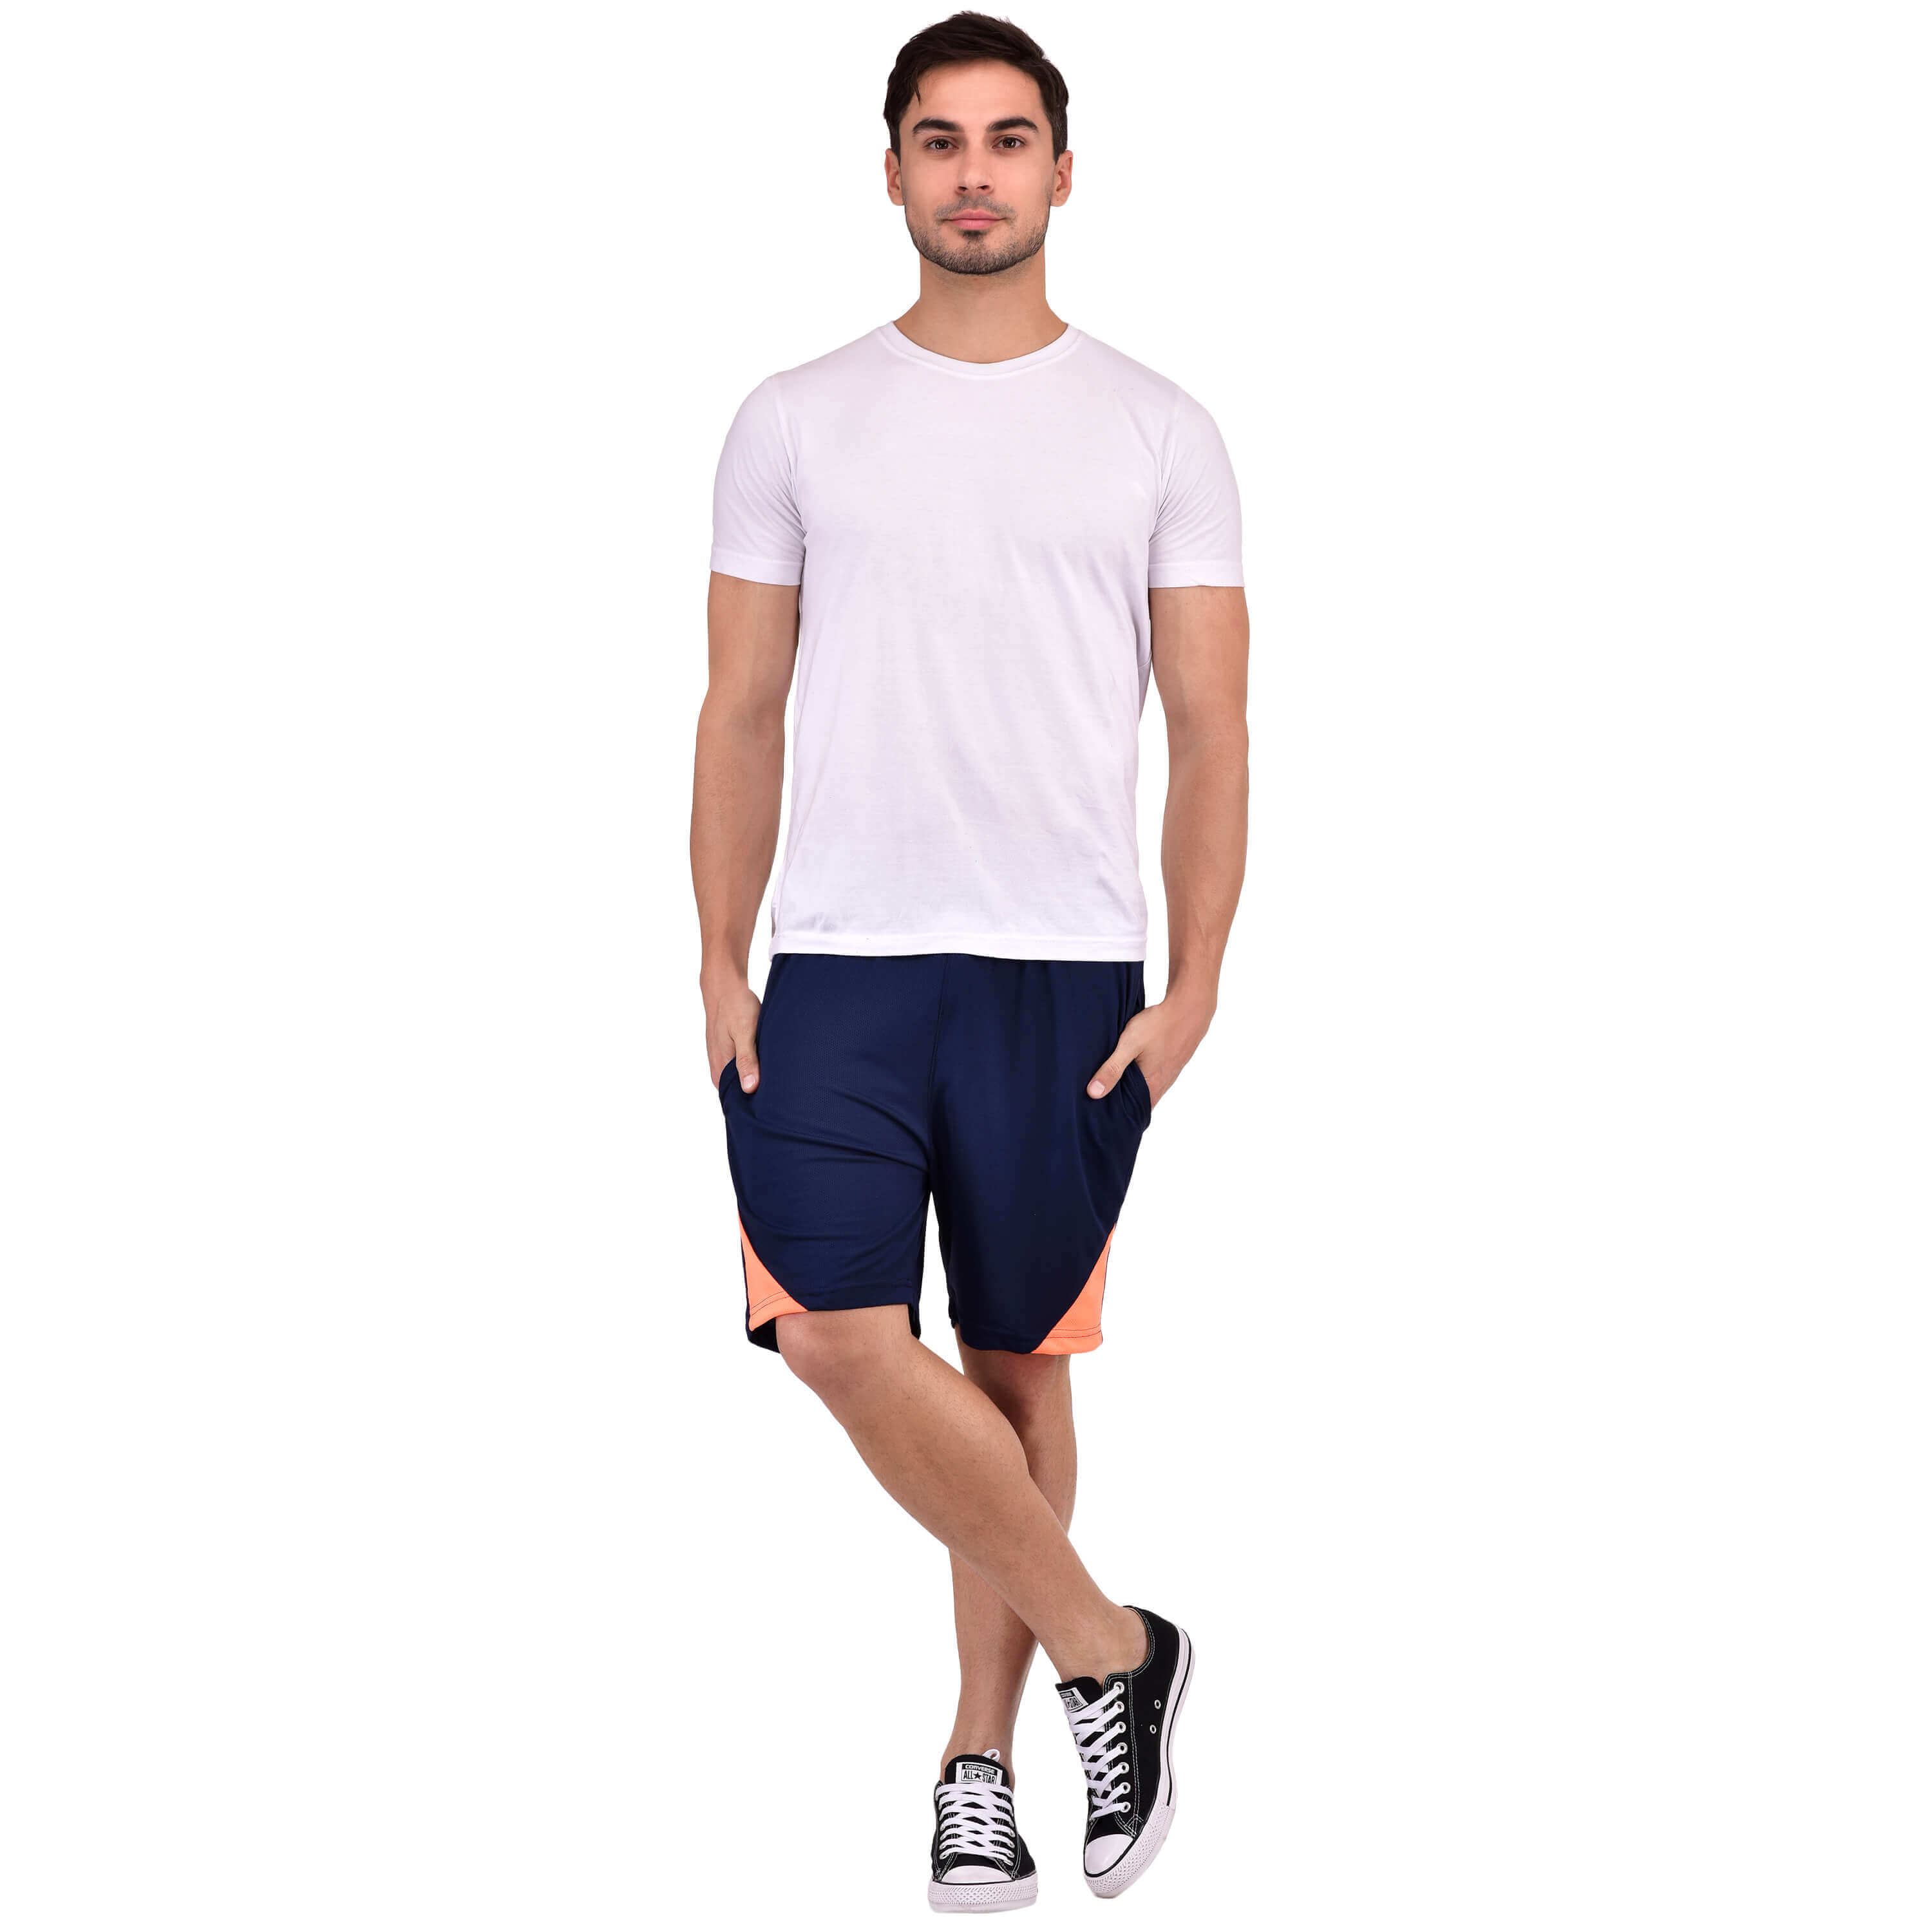 Cotton T Shirts Manufacturers in Singapore